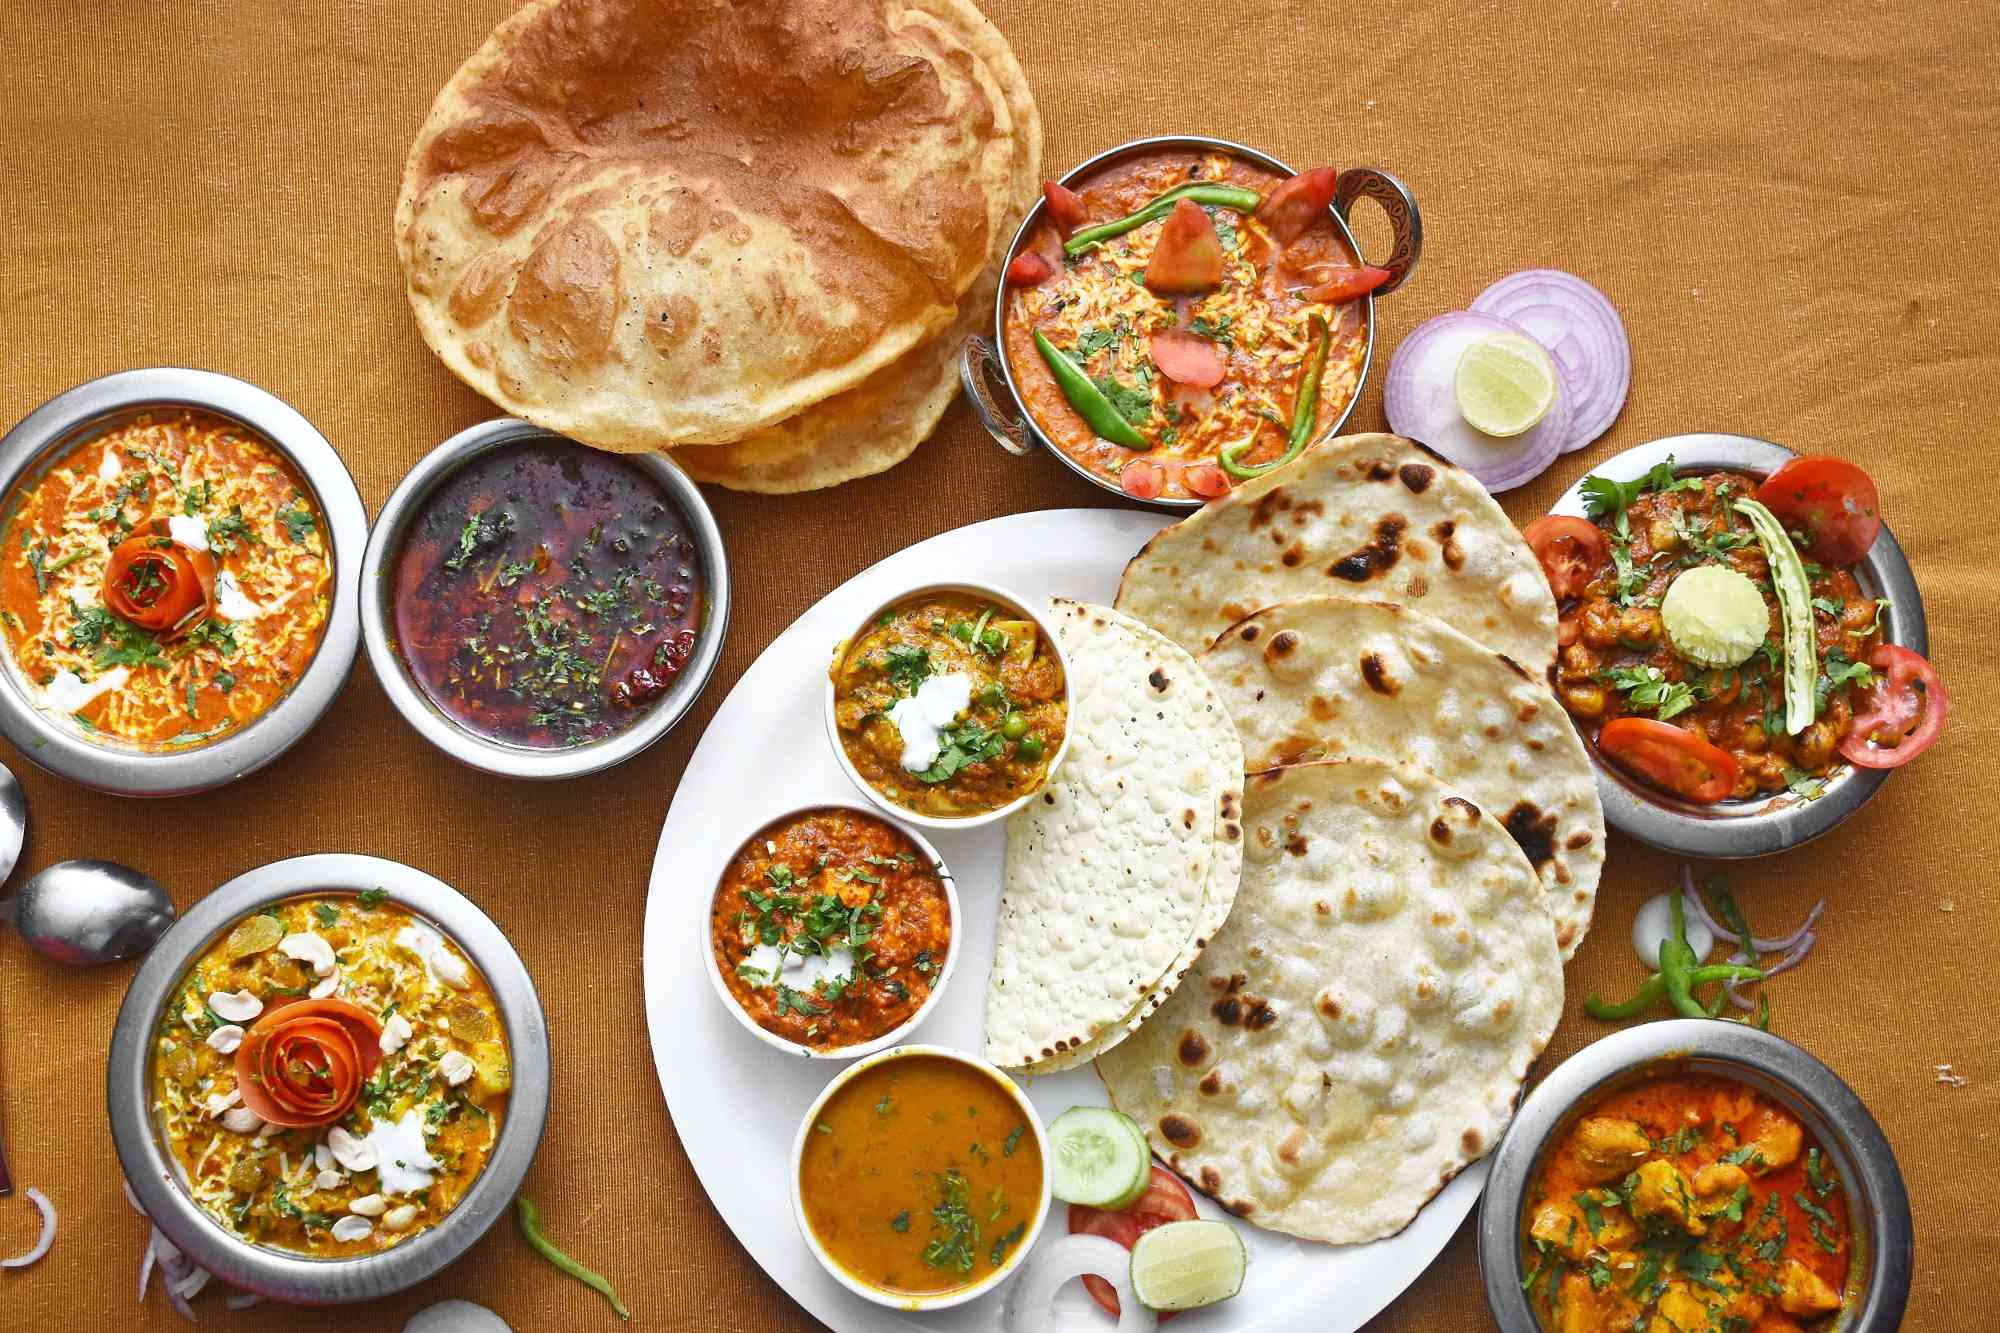 full spread of Indian dishes on a brown table cloth